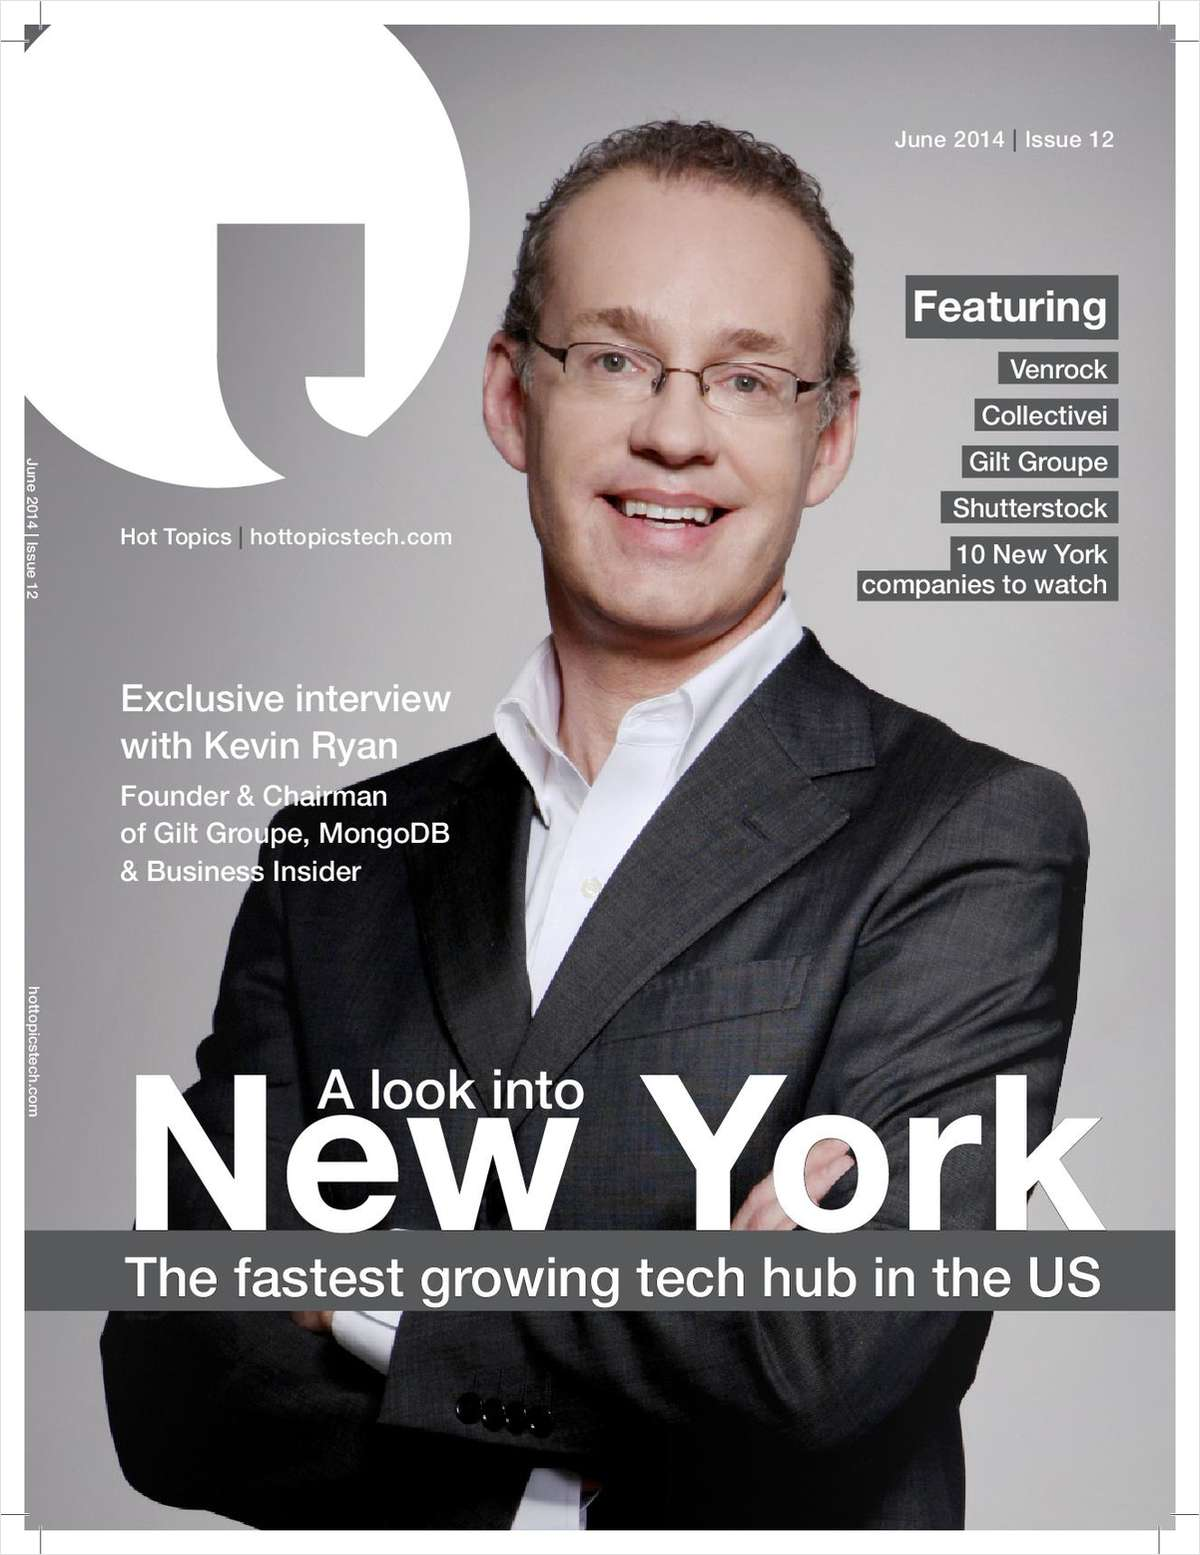 Hot Topics Tech Magazine -- A Look into New York, the Fastest Growing Tech Hub in the US